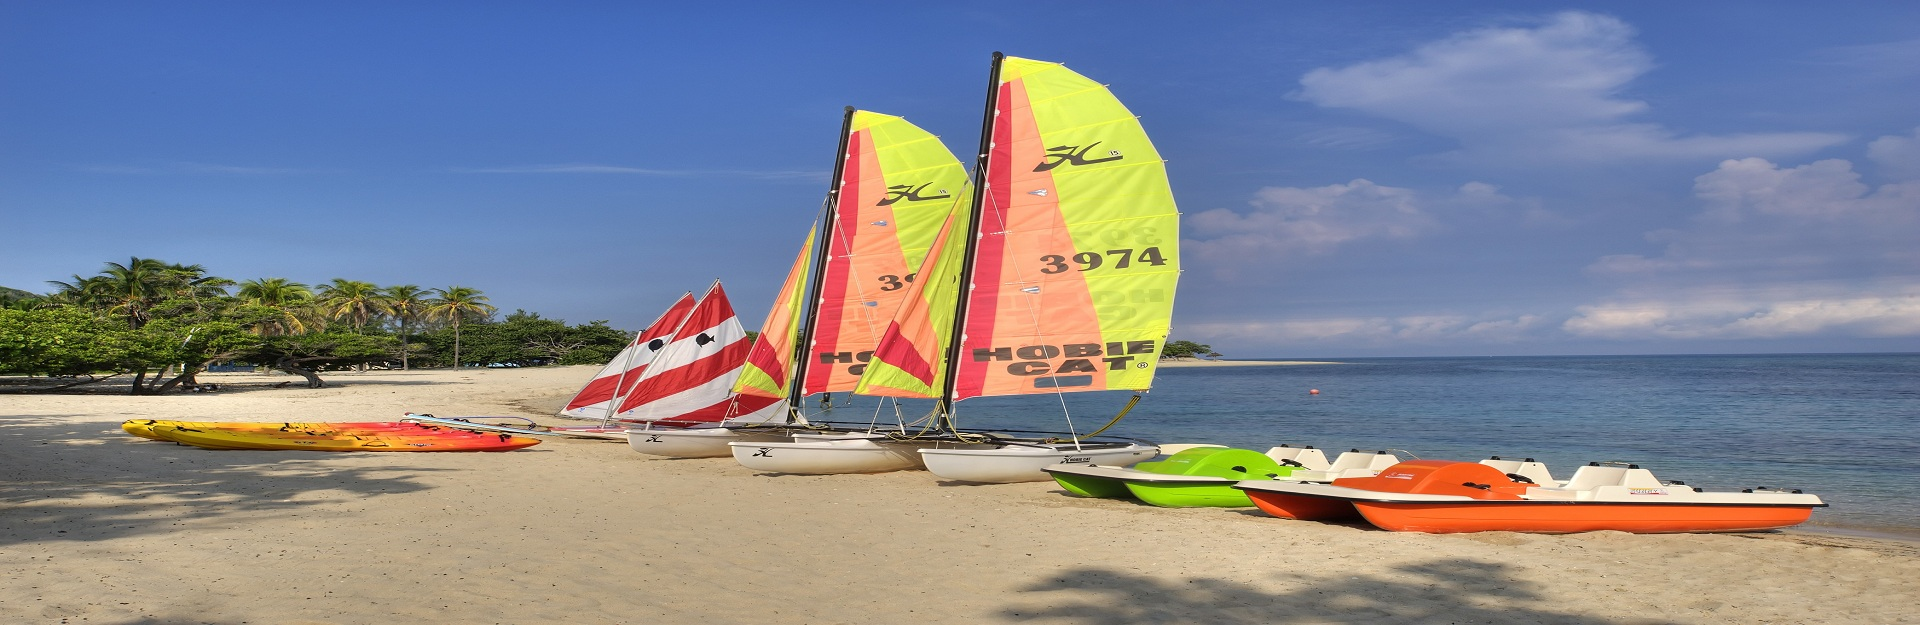 nautical activities in Jibacoa beach, Cuba Travel